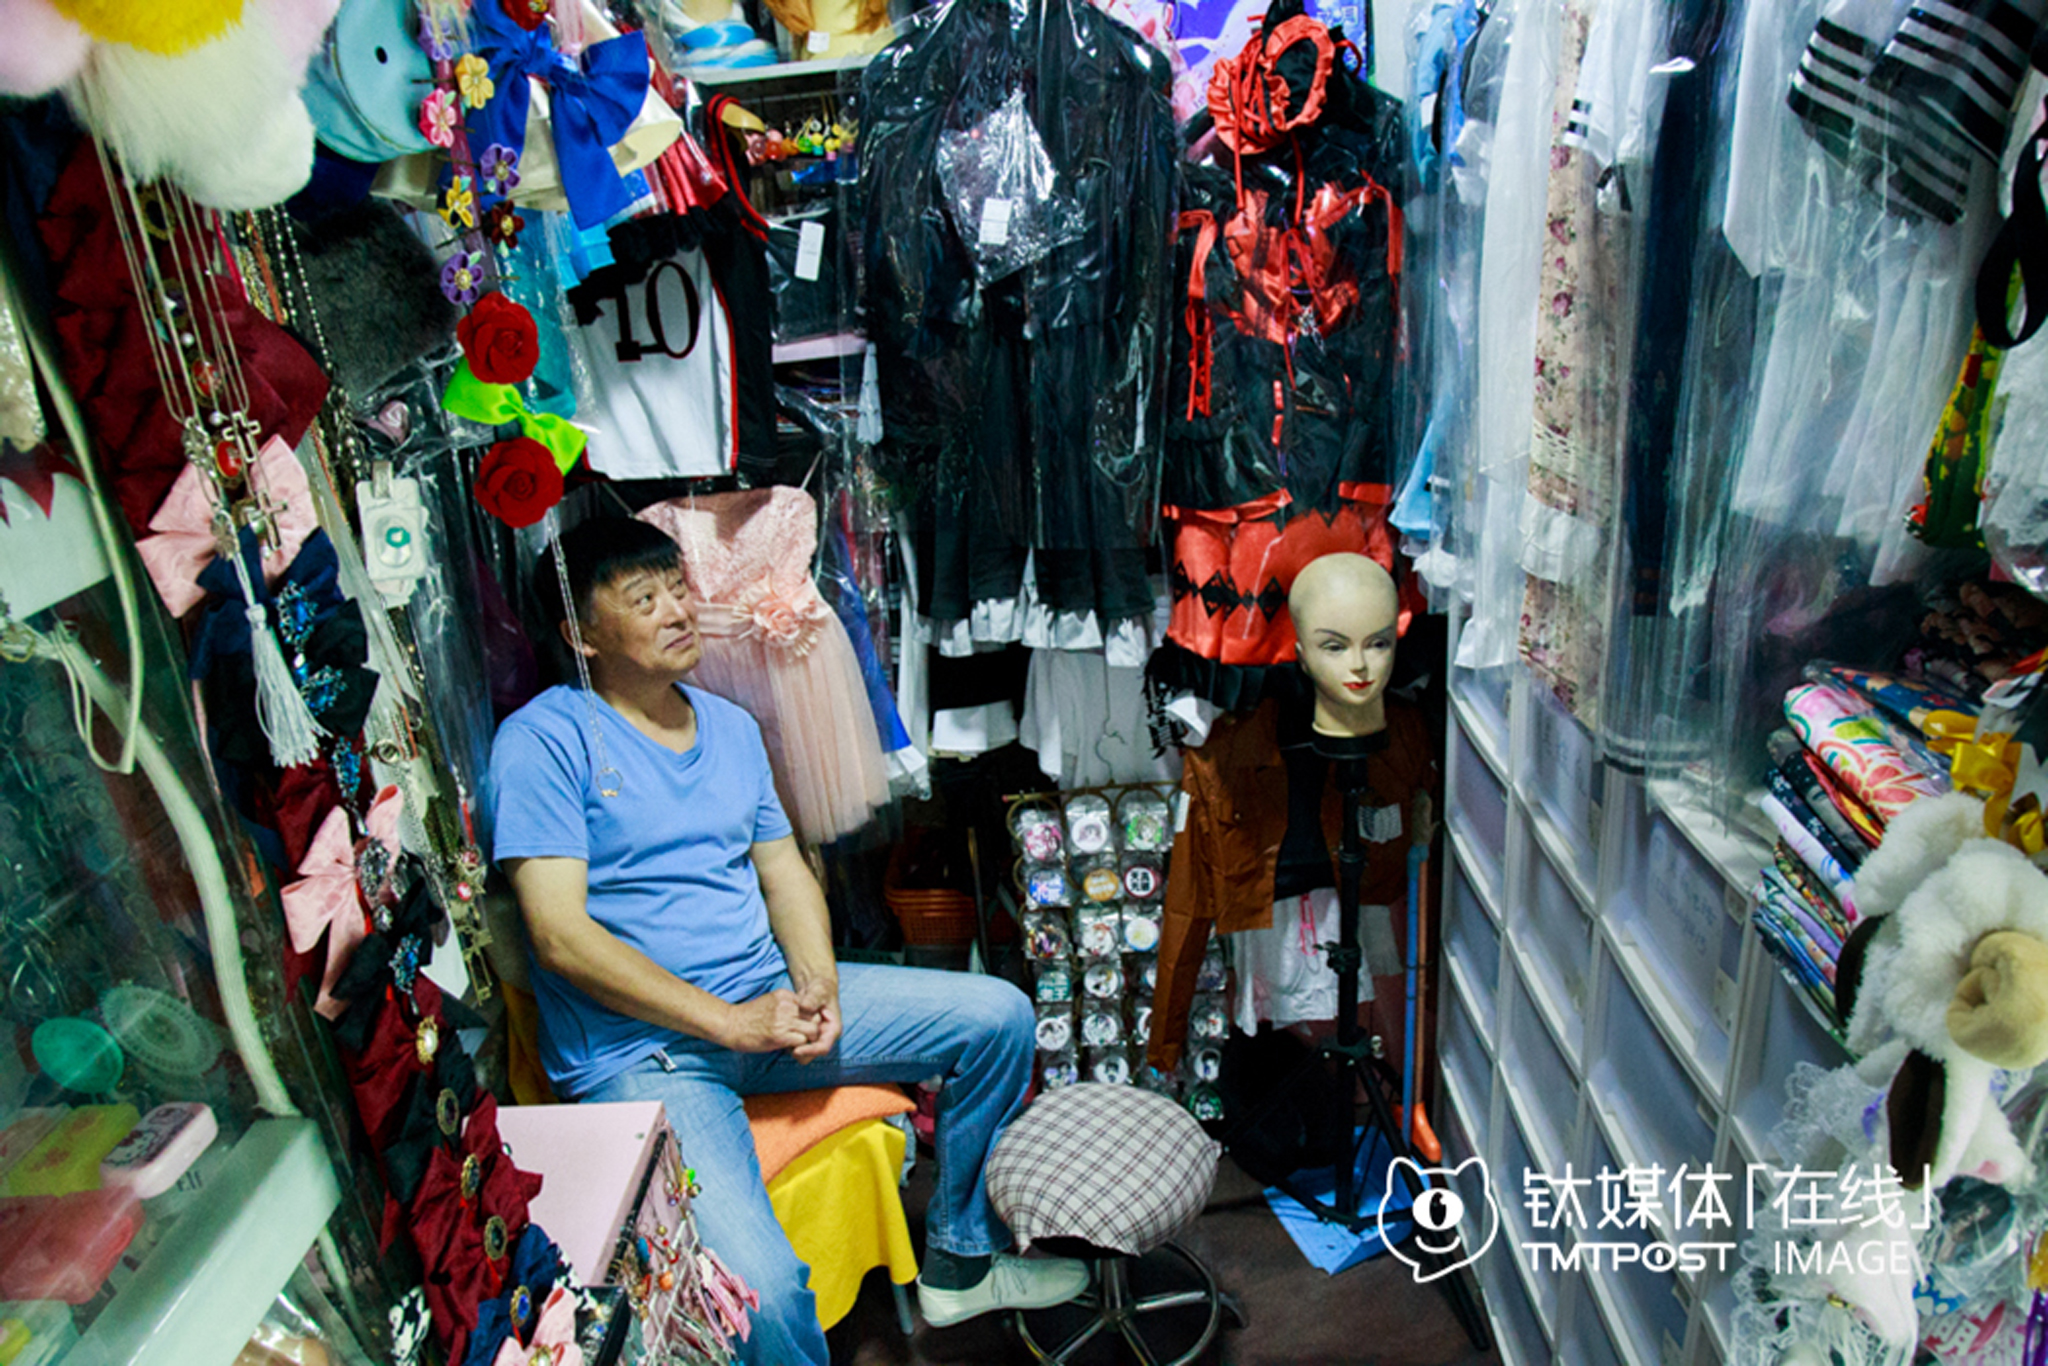 Mr. Zhou's shopwas the only cosplay costume shop left in the SoShow shopping mall in Beijing. He ran the shop himself, but the traffic was not at all busy. Young people seldom go to offline shops to buy cosplay clothes. Although there were professional tailors who could make customized costumes for cosers, most people preferred to buy costumes on Taobao, since it's generally 50% cheaper online. Mr. Zhou also prepared some clothes he bought from shops on Taobao, but those costumes were poorly-made in comparison.